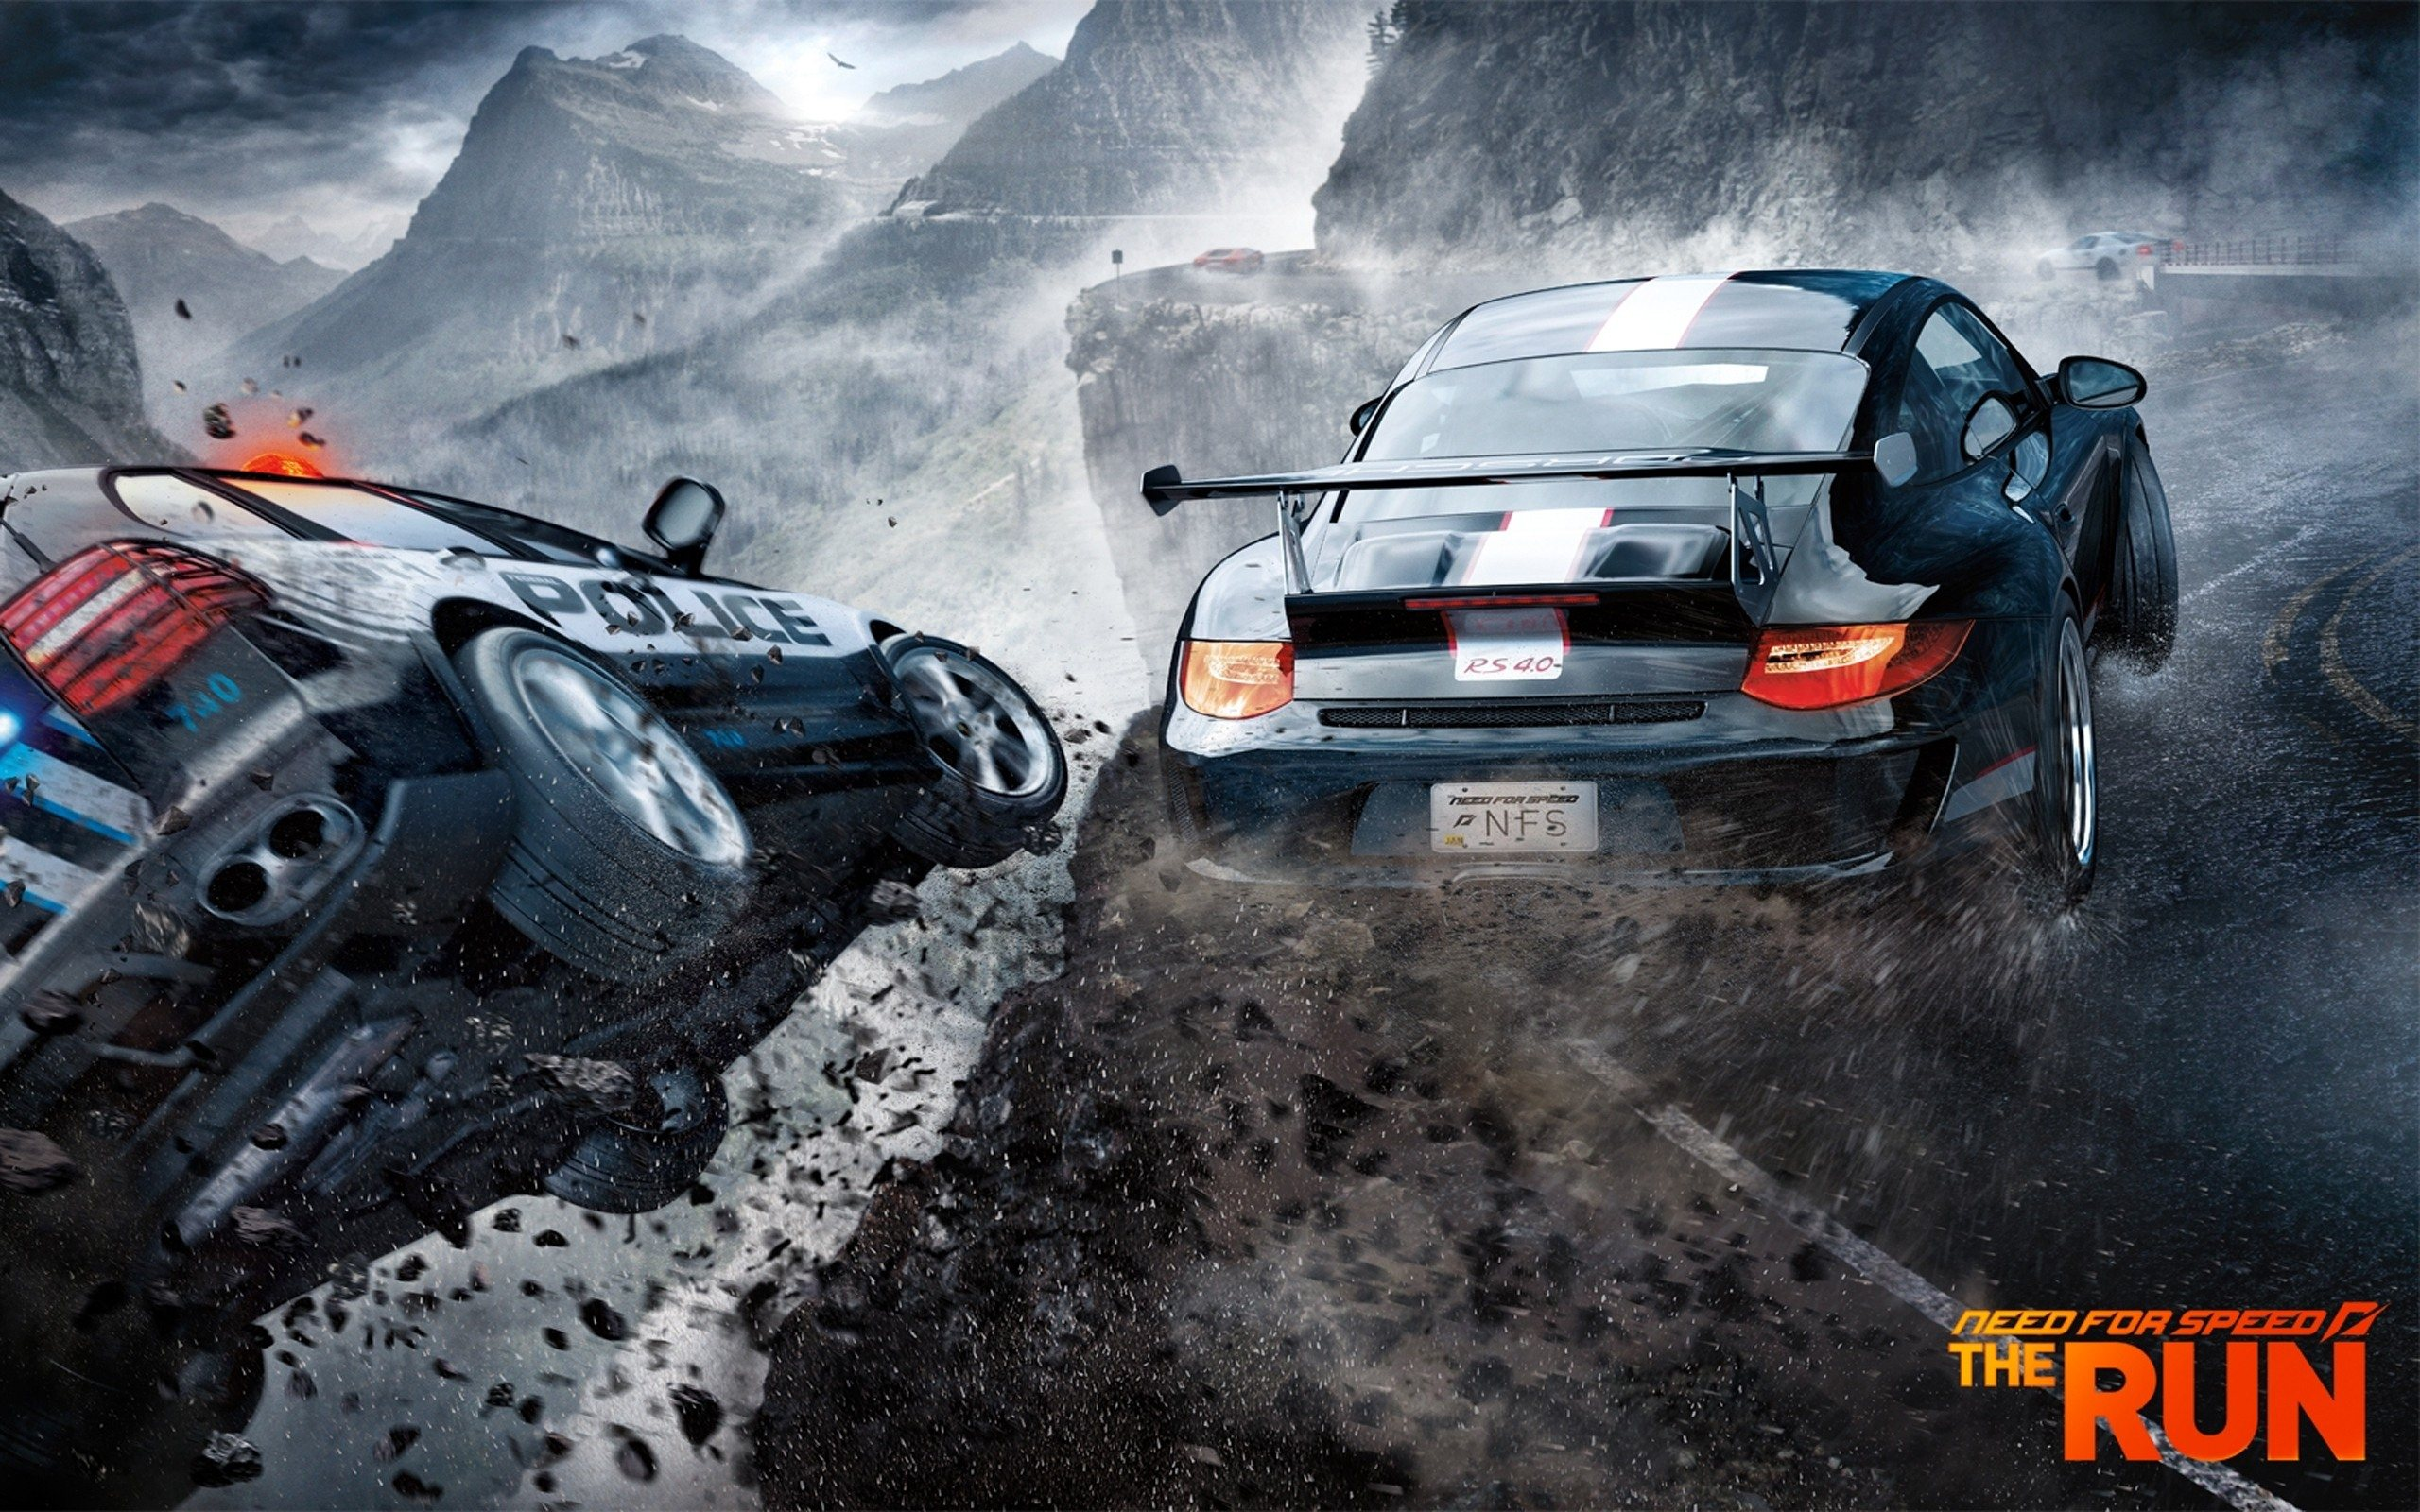 Free Download Need For Speed The Run Hd Wallpapers And